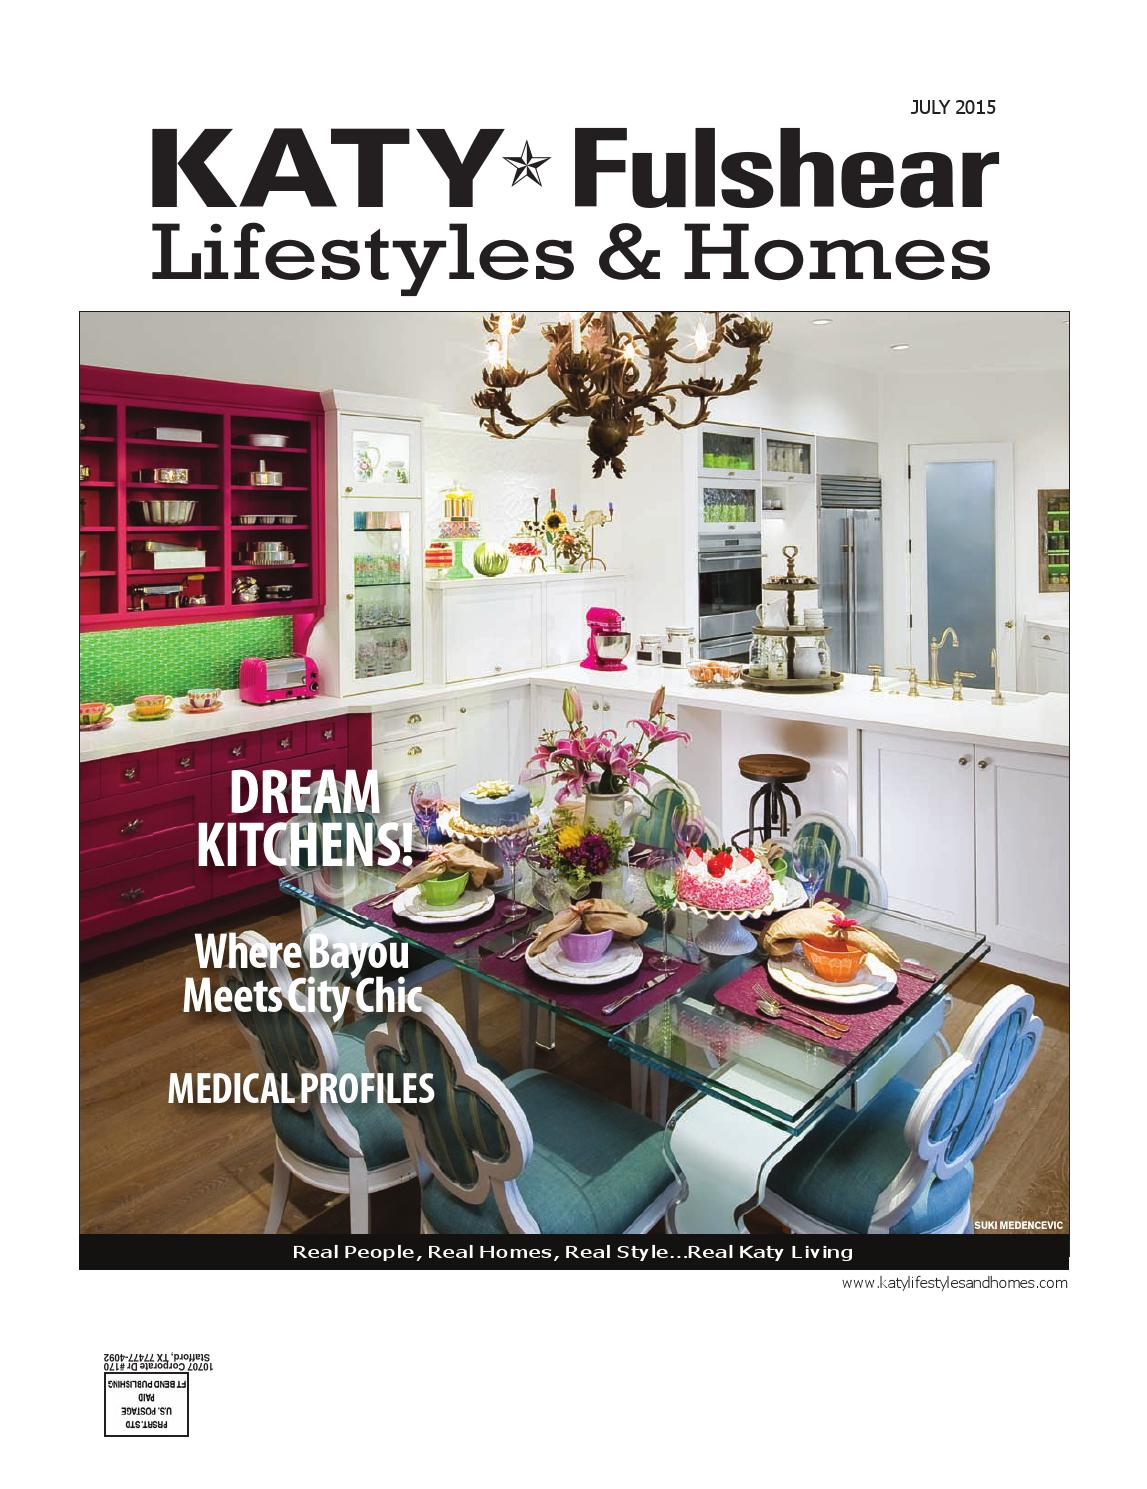 Katy-Fulshear Lifestyles & Homes July 2015 by Lifestyles & Homes